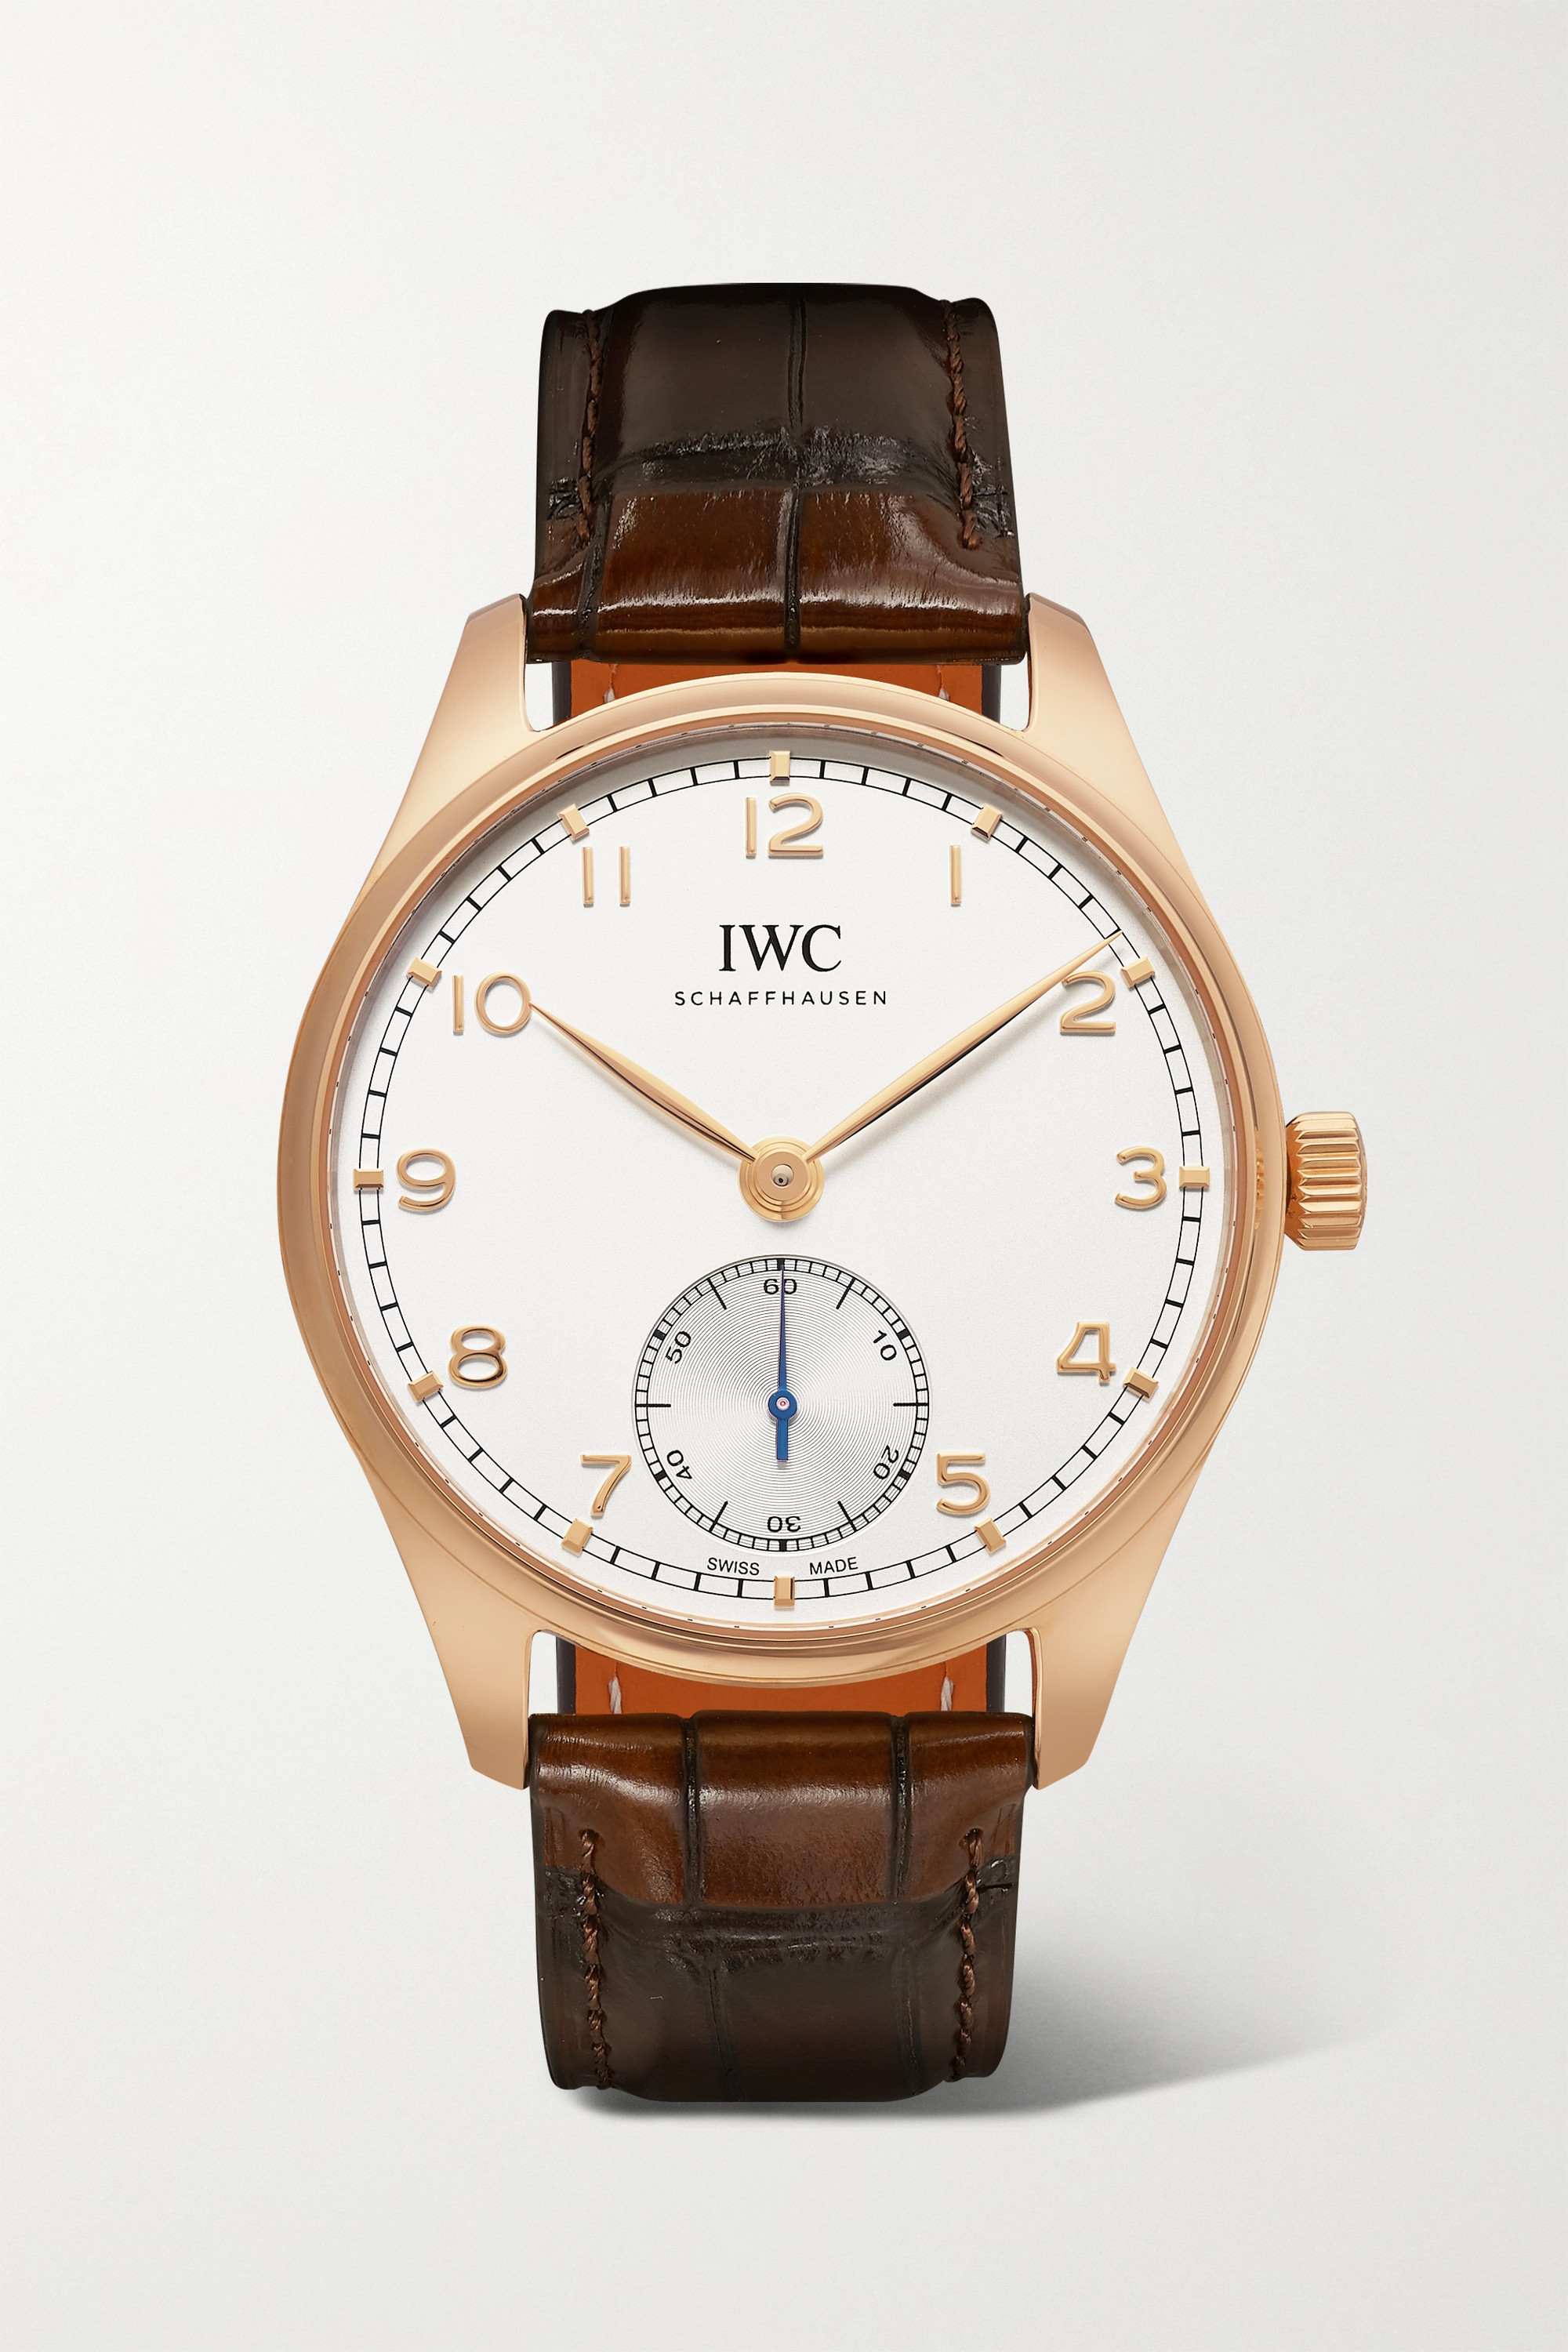 IWC SCHAFFHAUSEN Portugieser Automatic 40.4mm 18-karat red gold and alligator watch